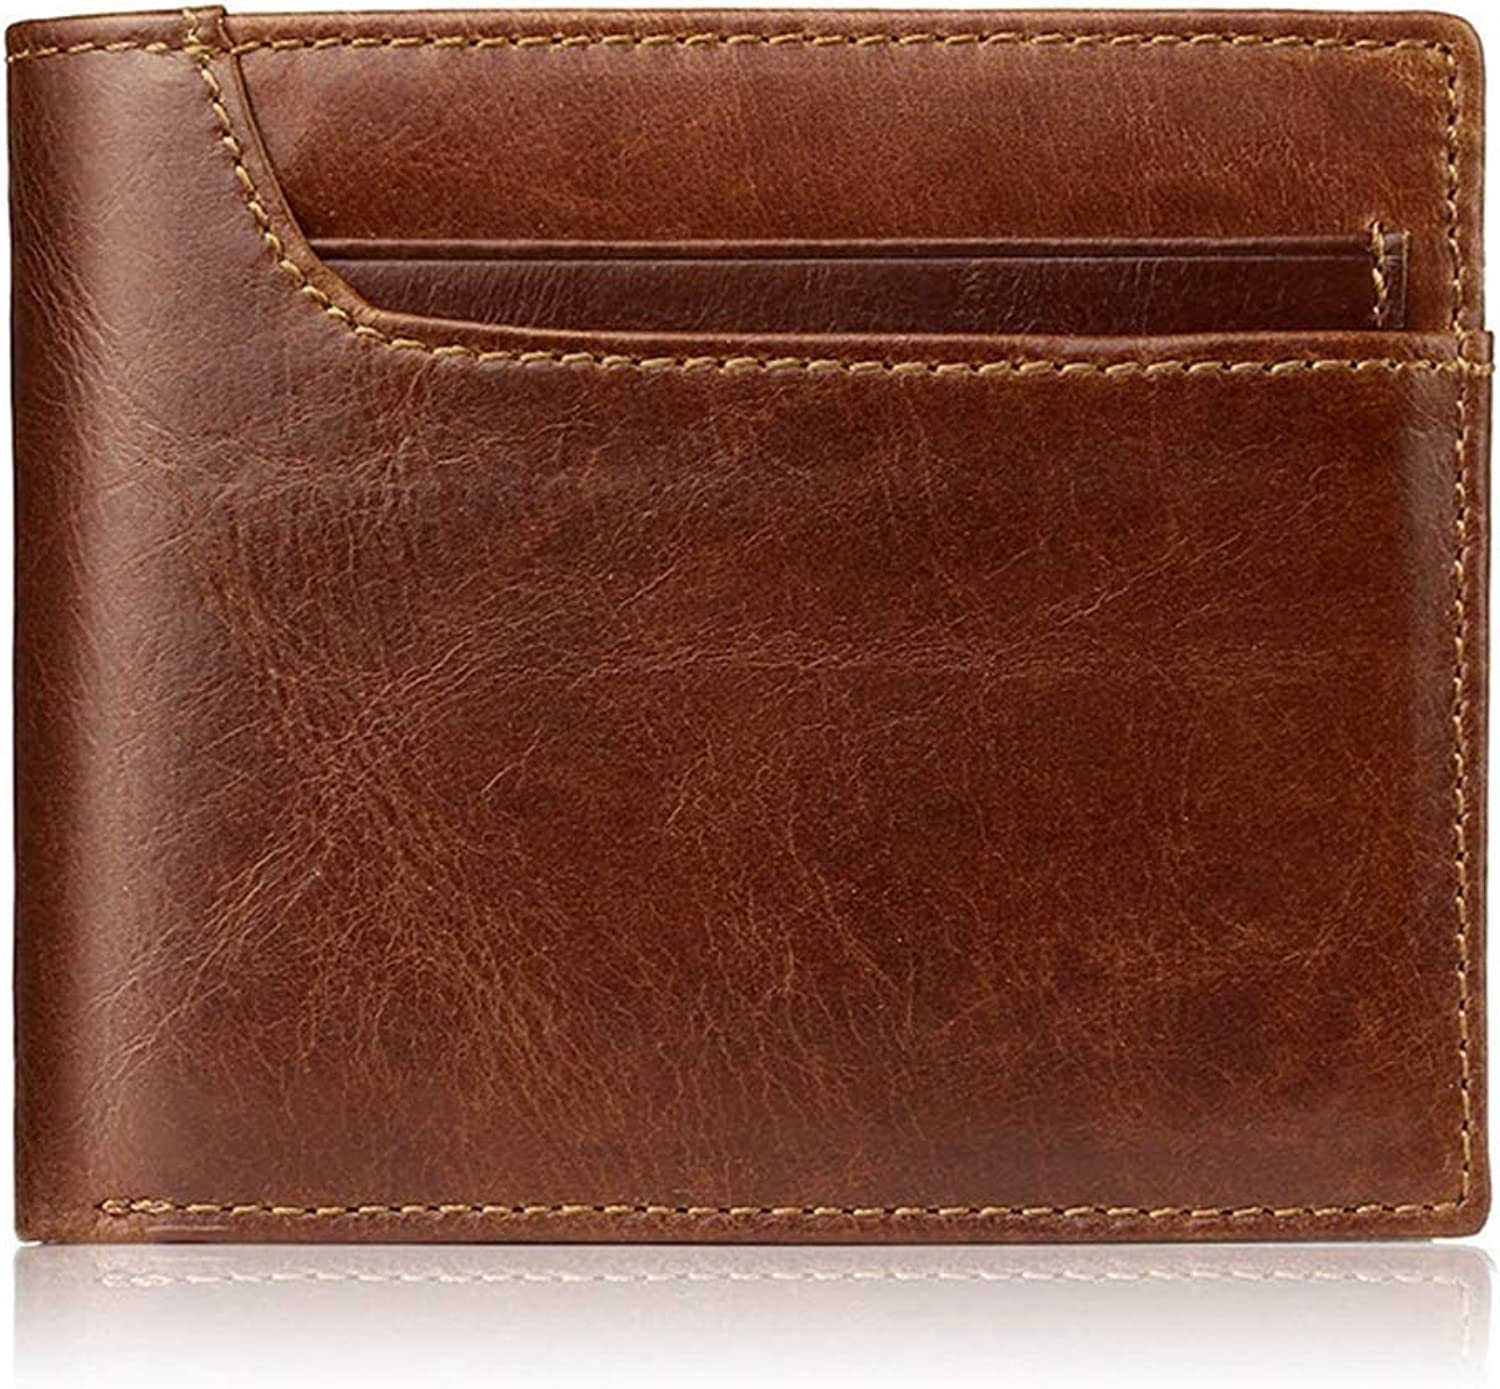 Hyue Leather Abbreviated Paragraph Both Men And Women Wallet Card Bag Portable Ultralight Minimalism (color   Photo color)